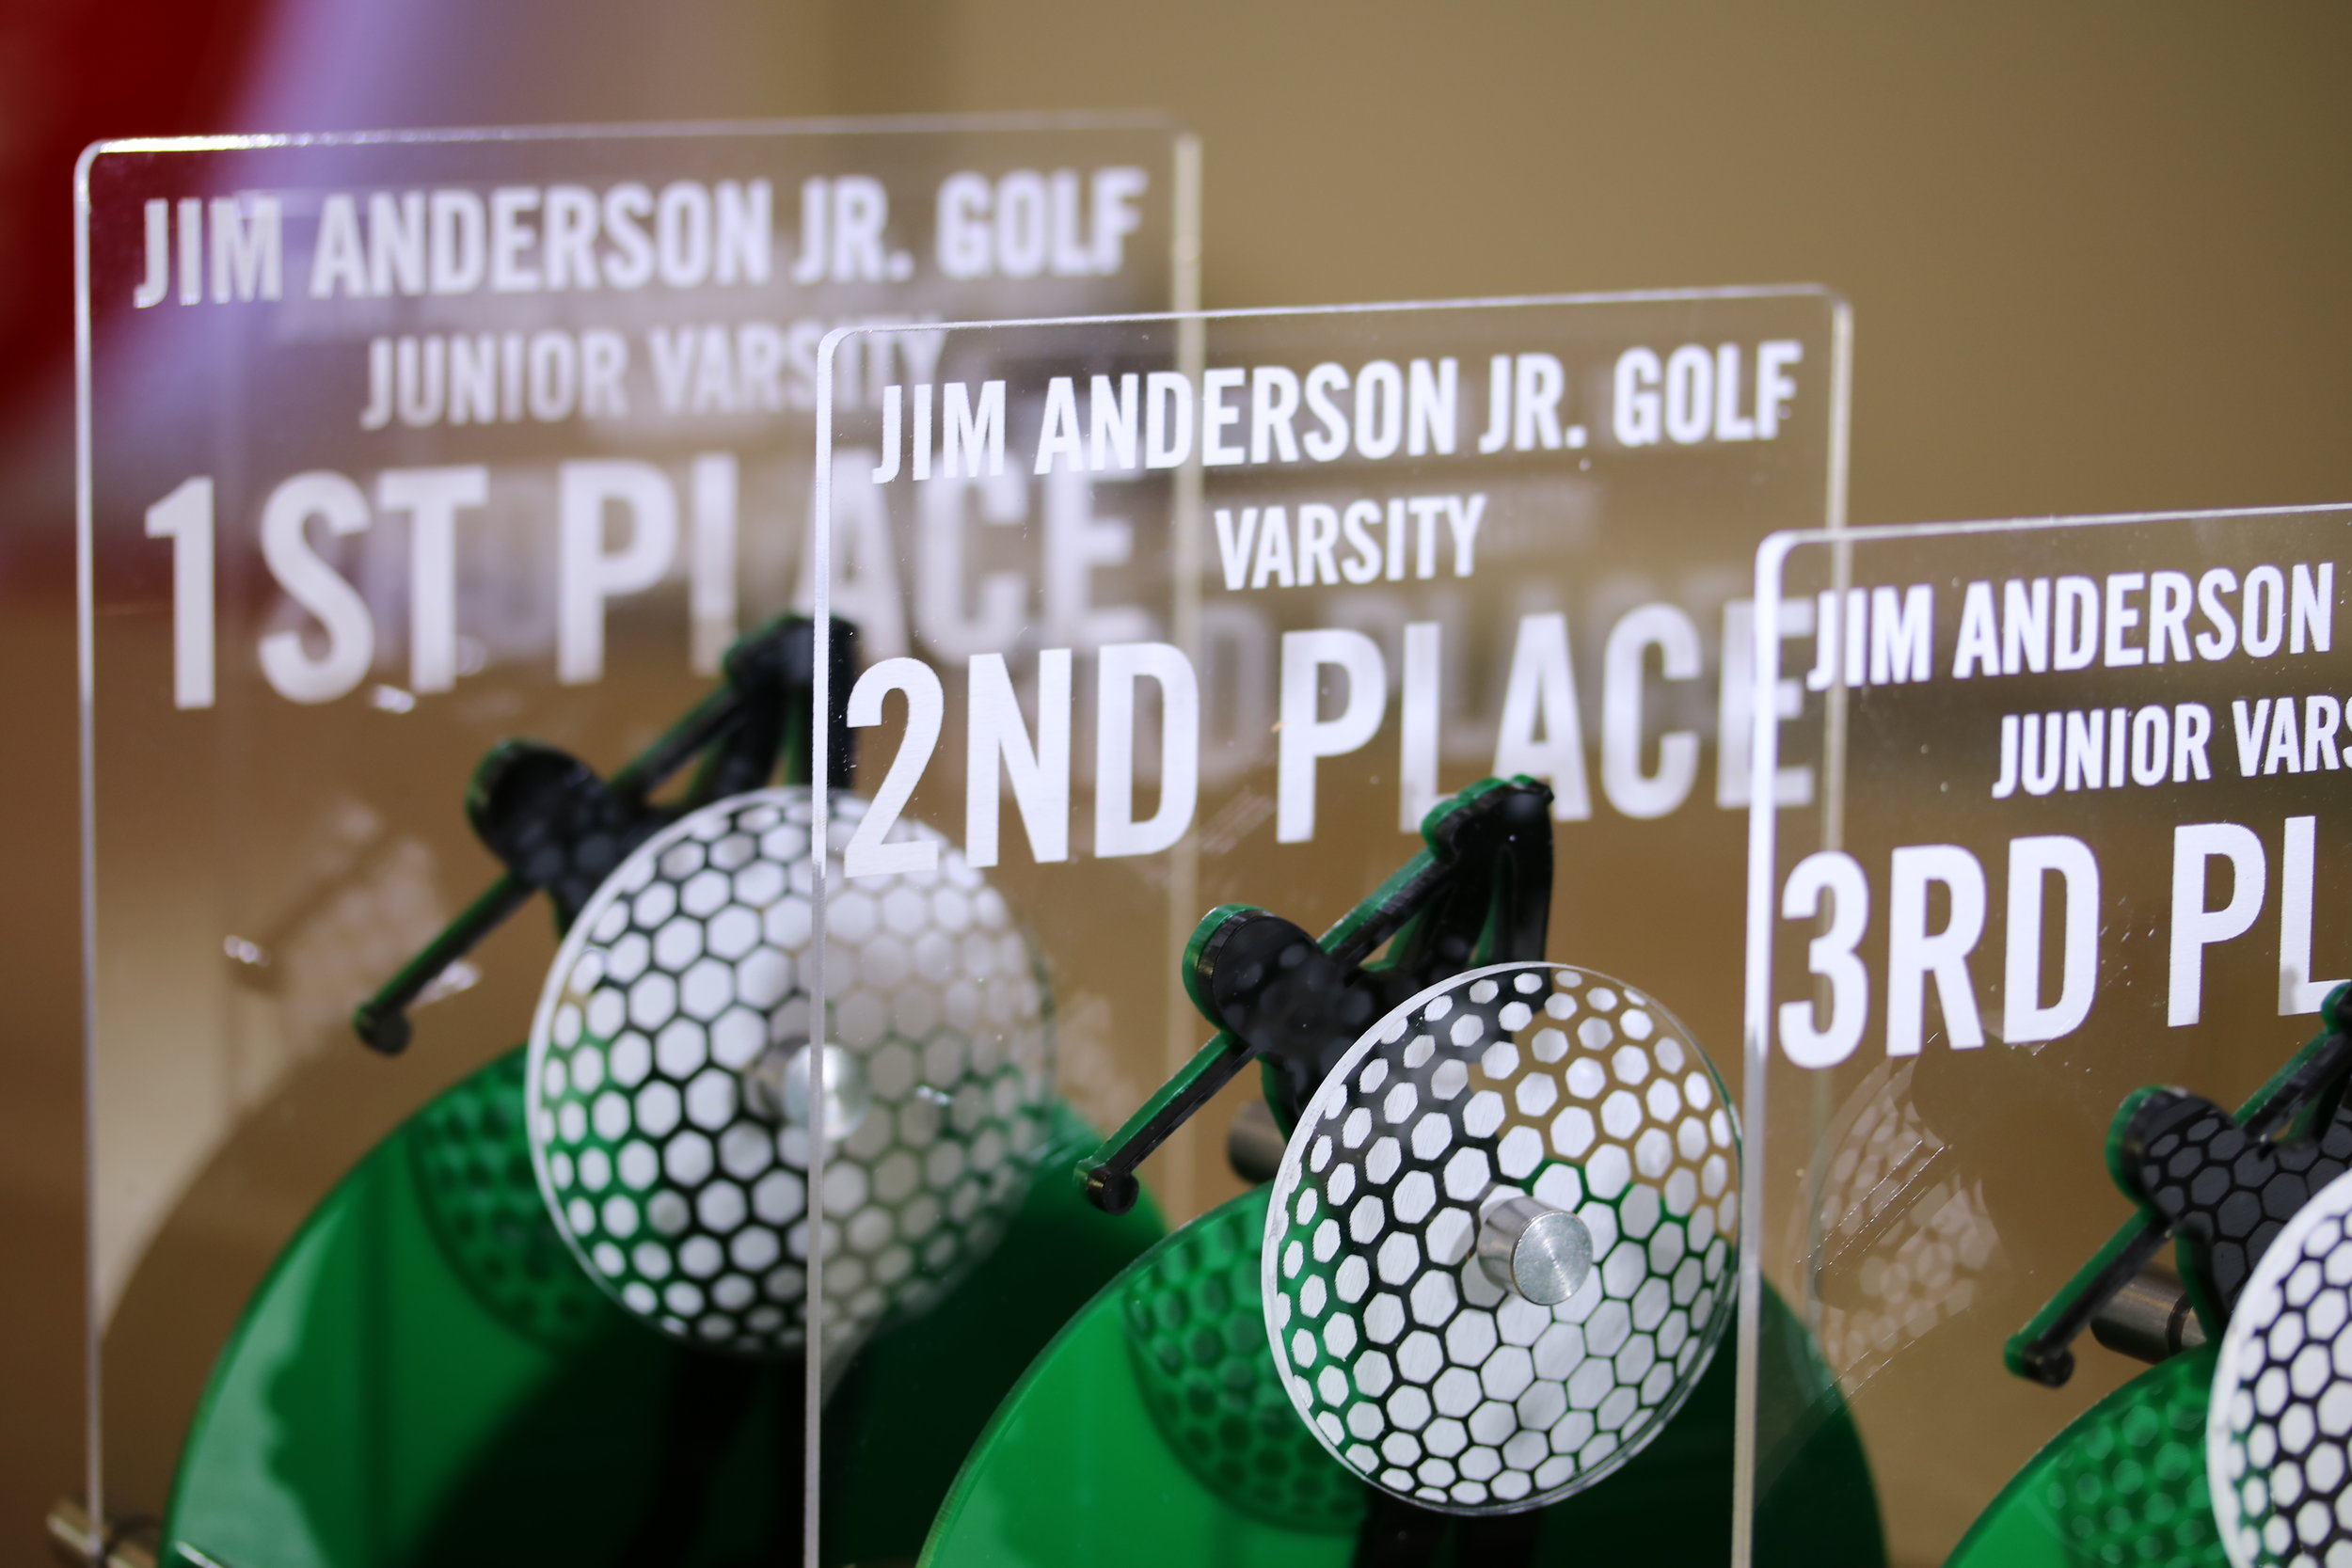 Jim Anderson Junior Golf Tournament - Varsity and Junior Varsity Awards  Contact us for pricing information.